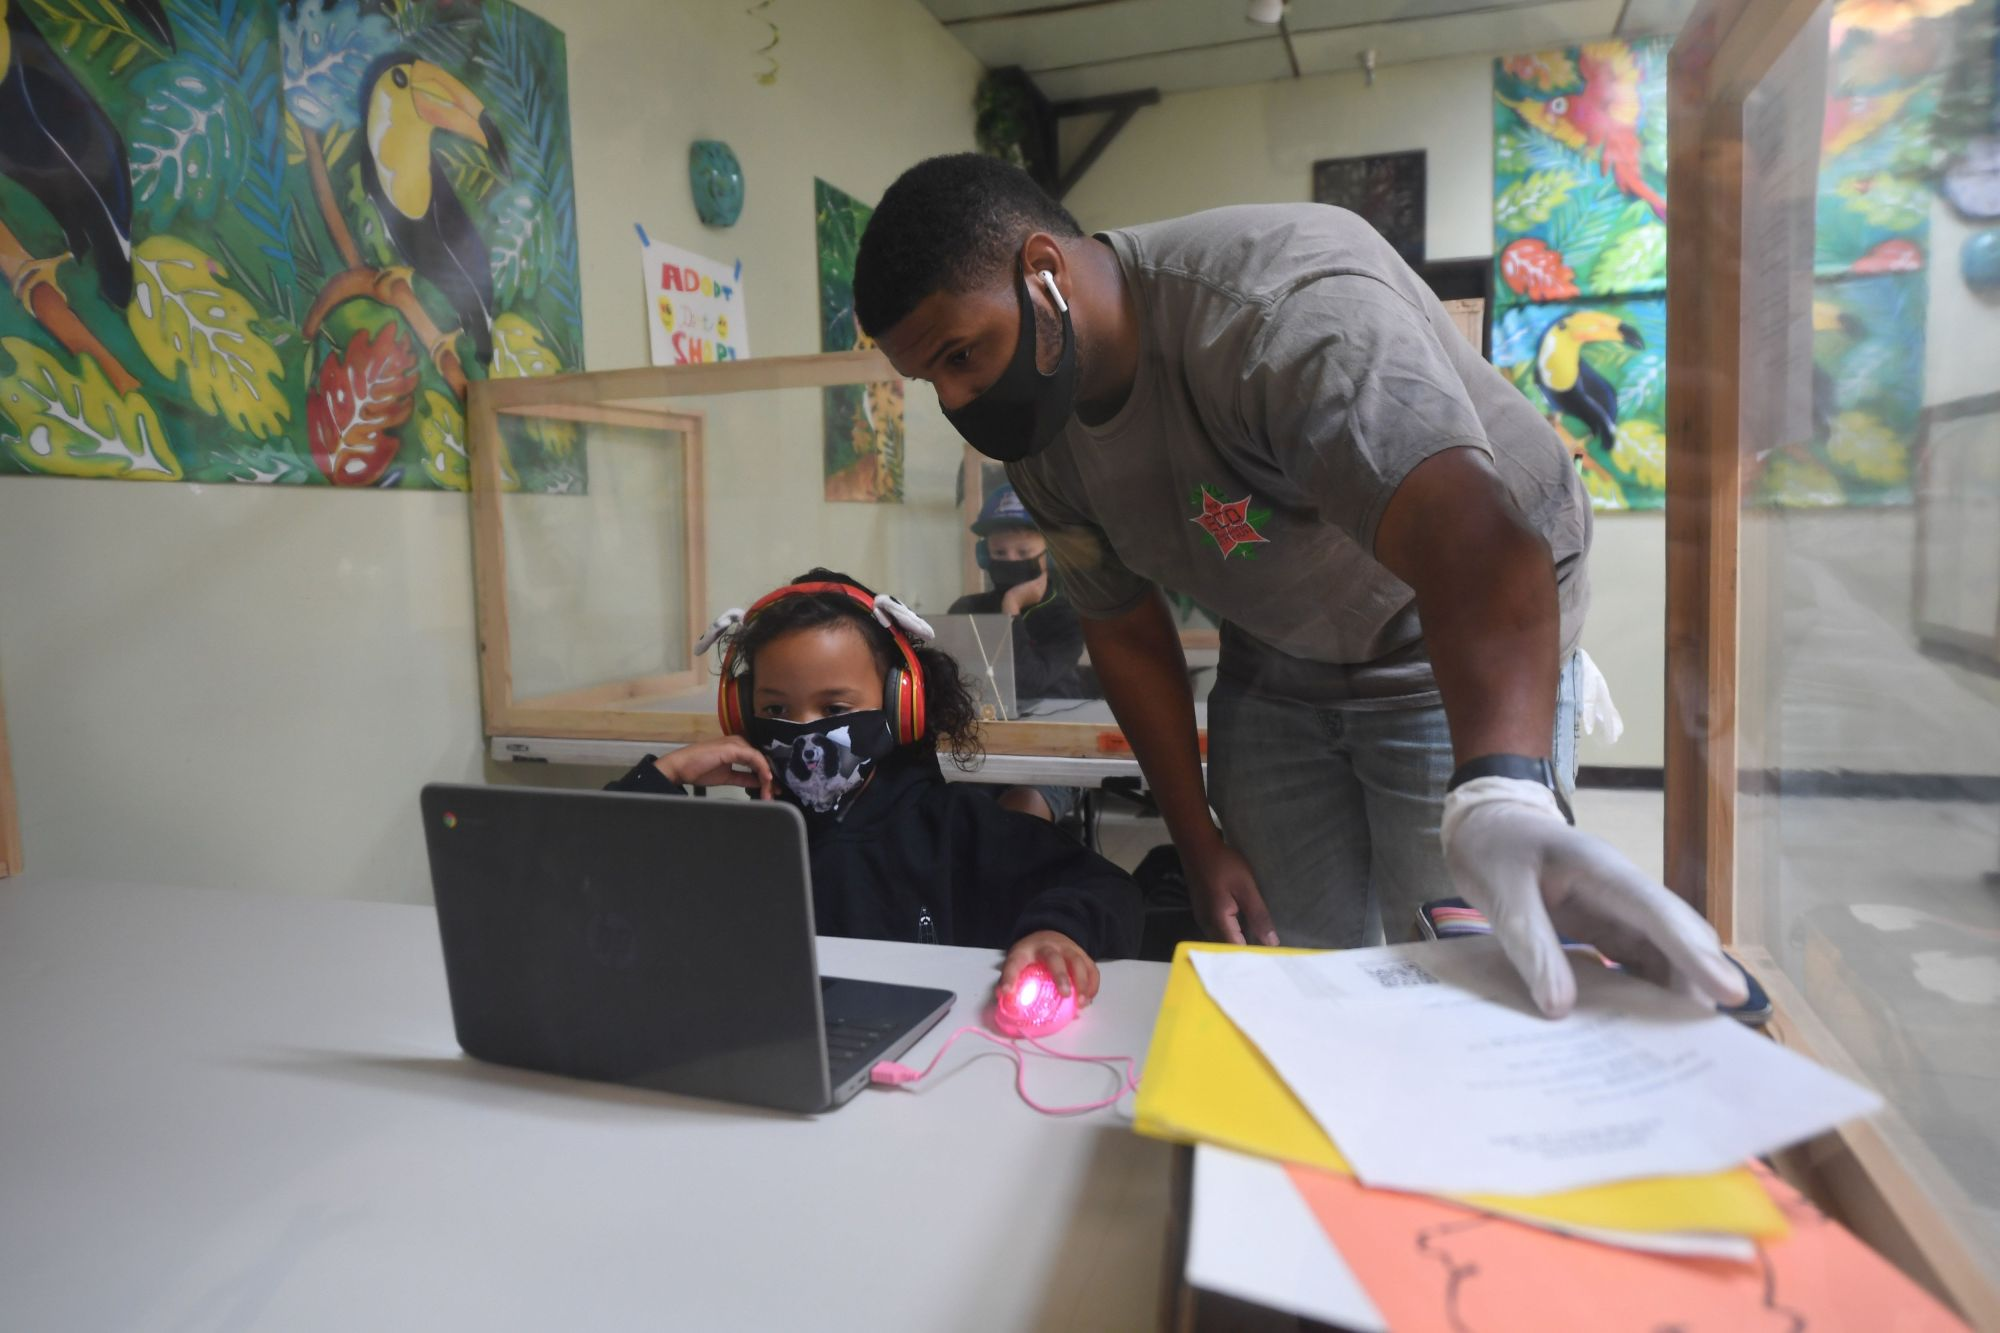 An instructor helps a student with her online school lesson at a desk separated from others by plastic barriers at STAR Eco Station Tutoring & Enrichment Center on Sept. 10, 2020 in Culver City, California. (ROBYN BECK/AFP via Getty Images)